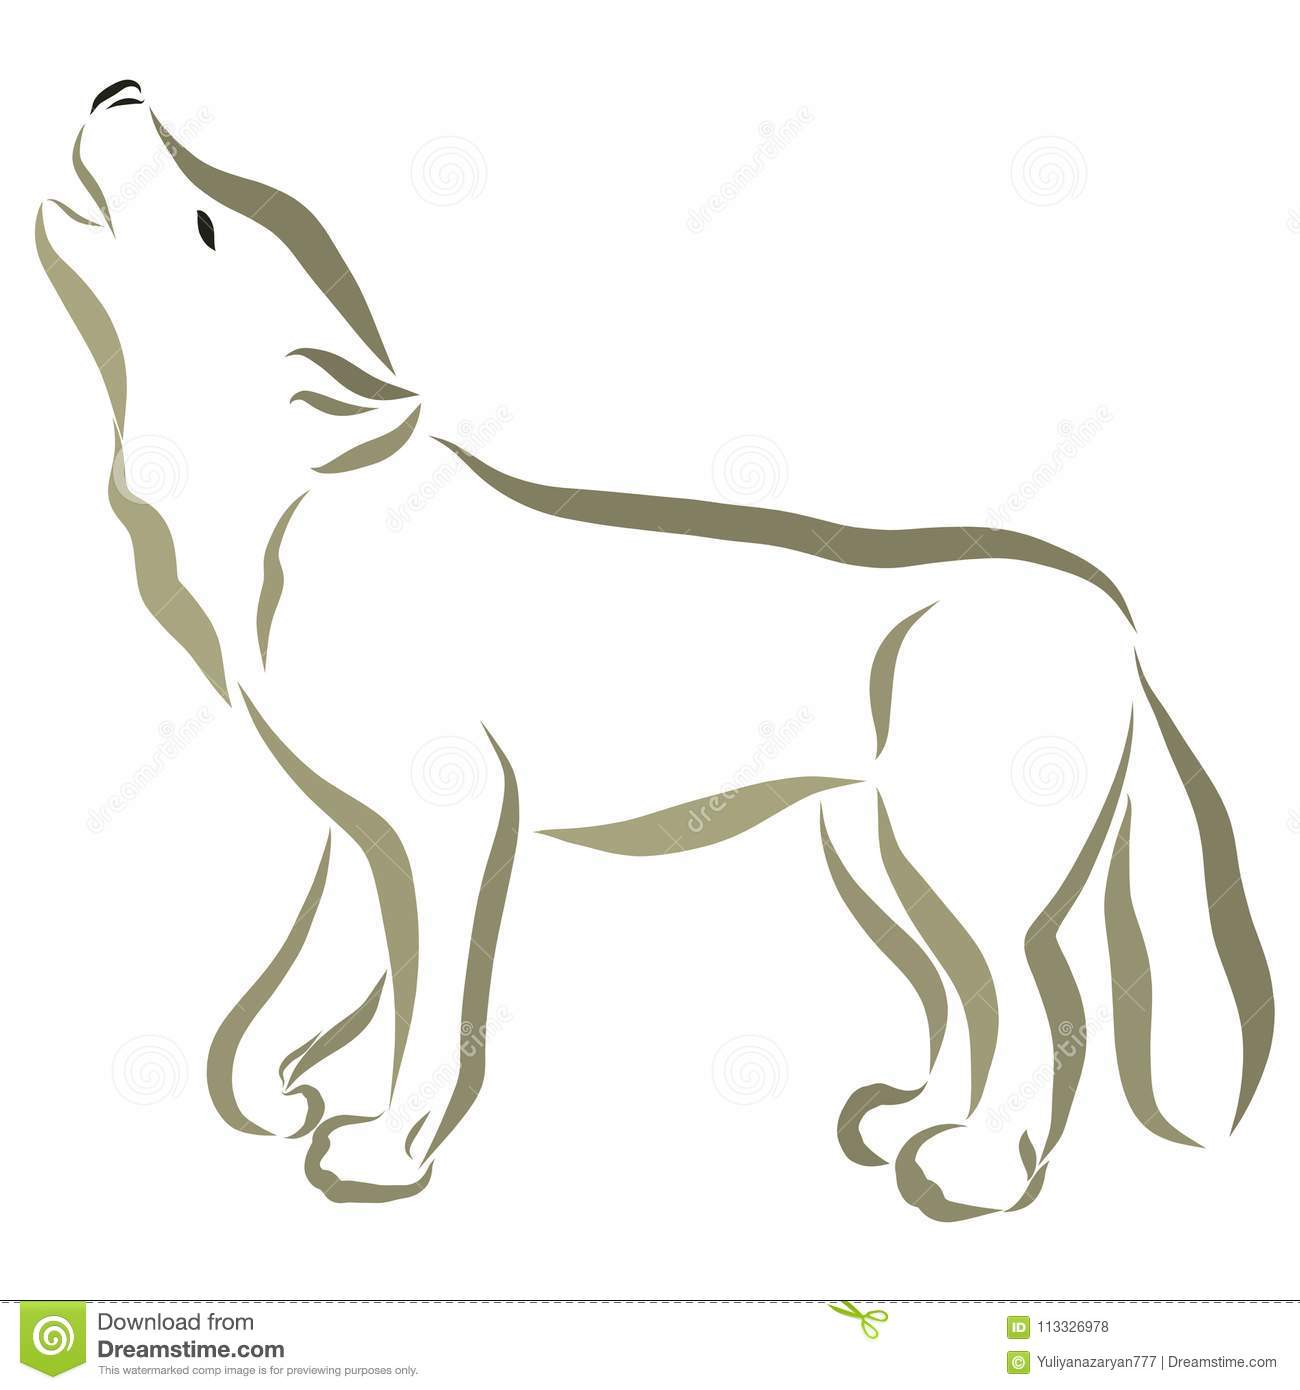 A wolf, a dog painted in flowing lines